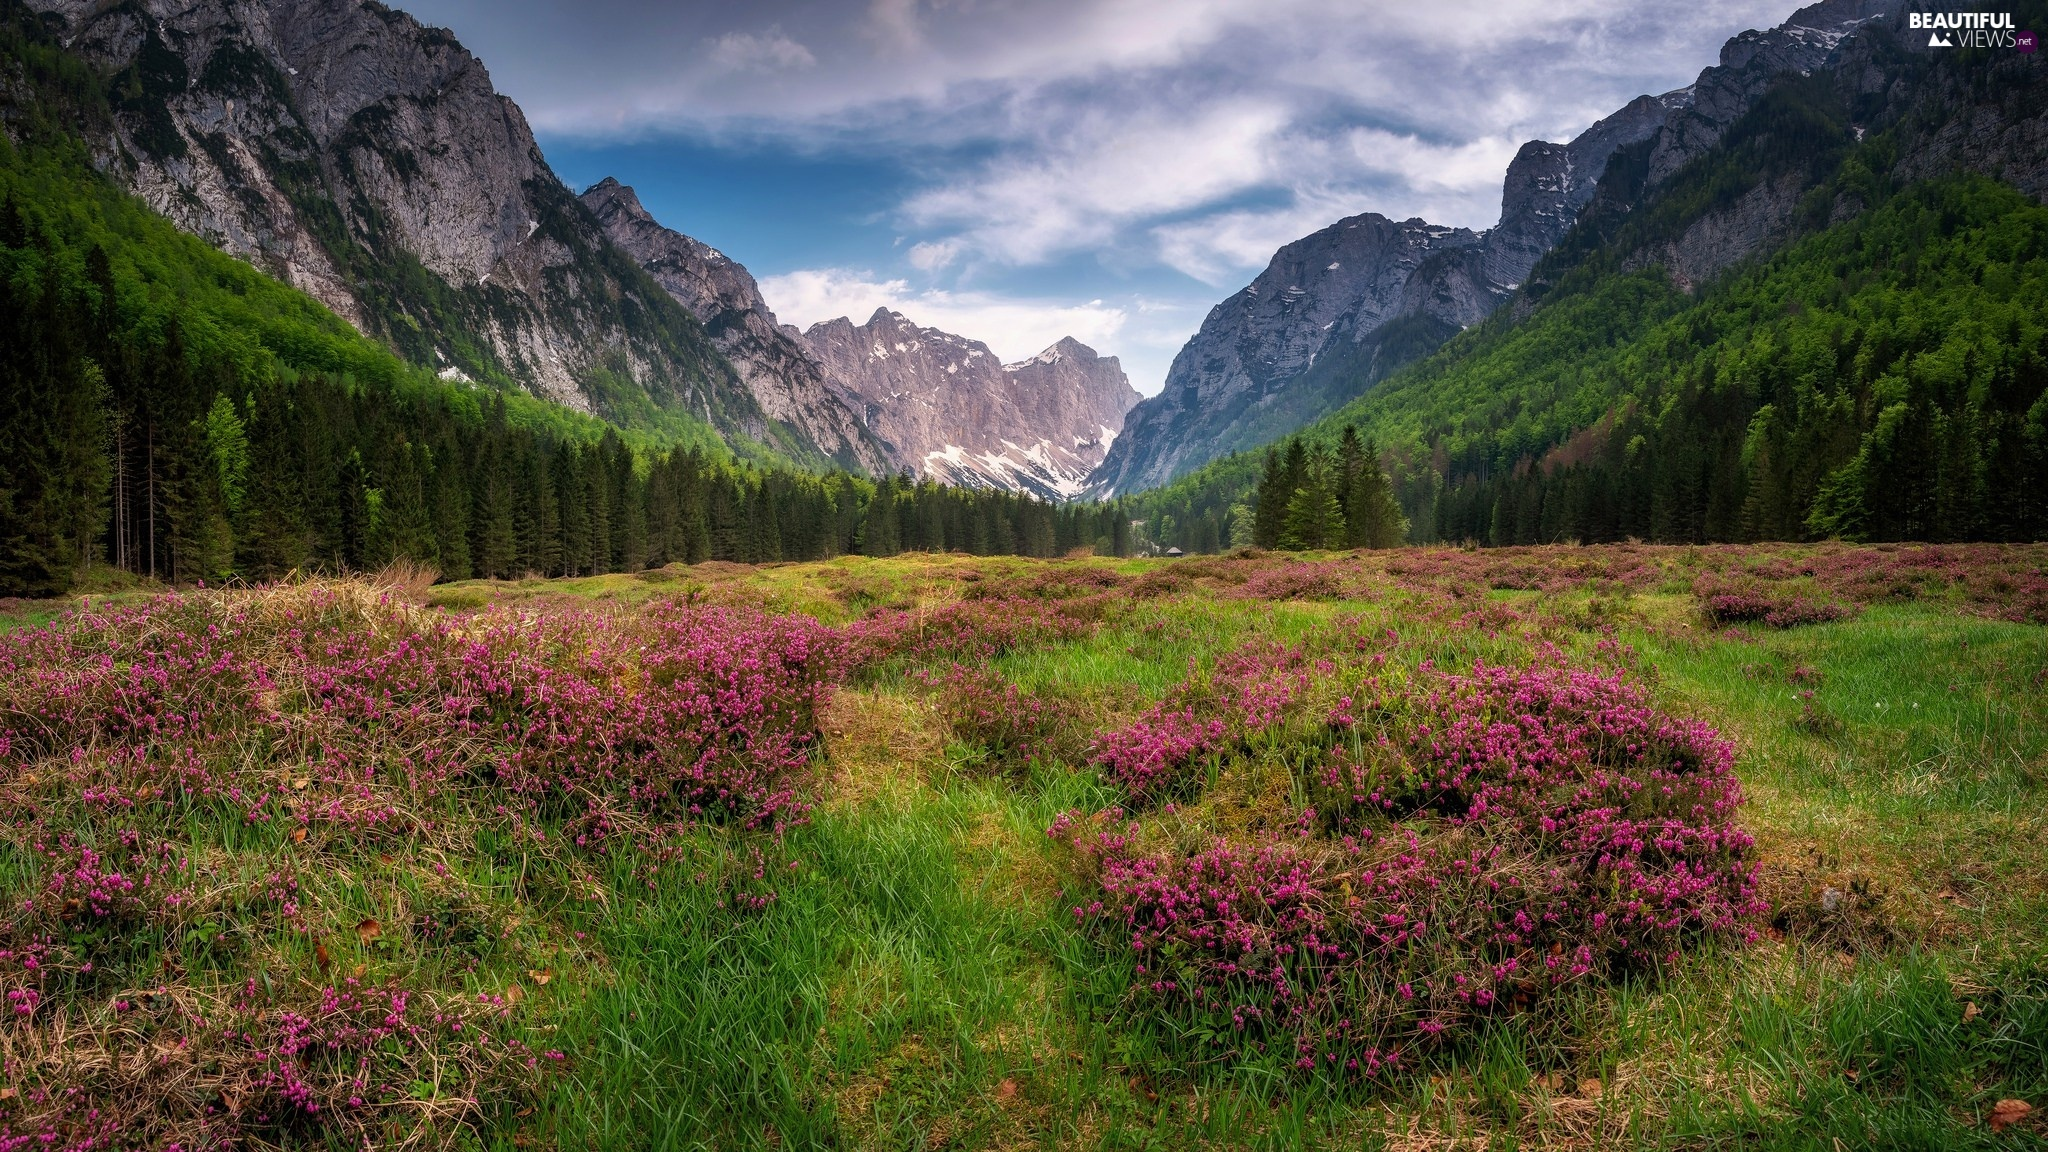 Slovenia, Julian Alps Mountains, Meadow, trees, Flowers, Triglav National Park, Krma Valley, viewes